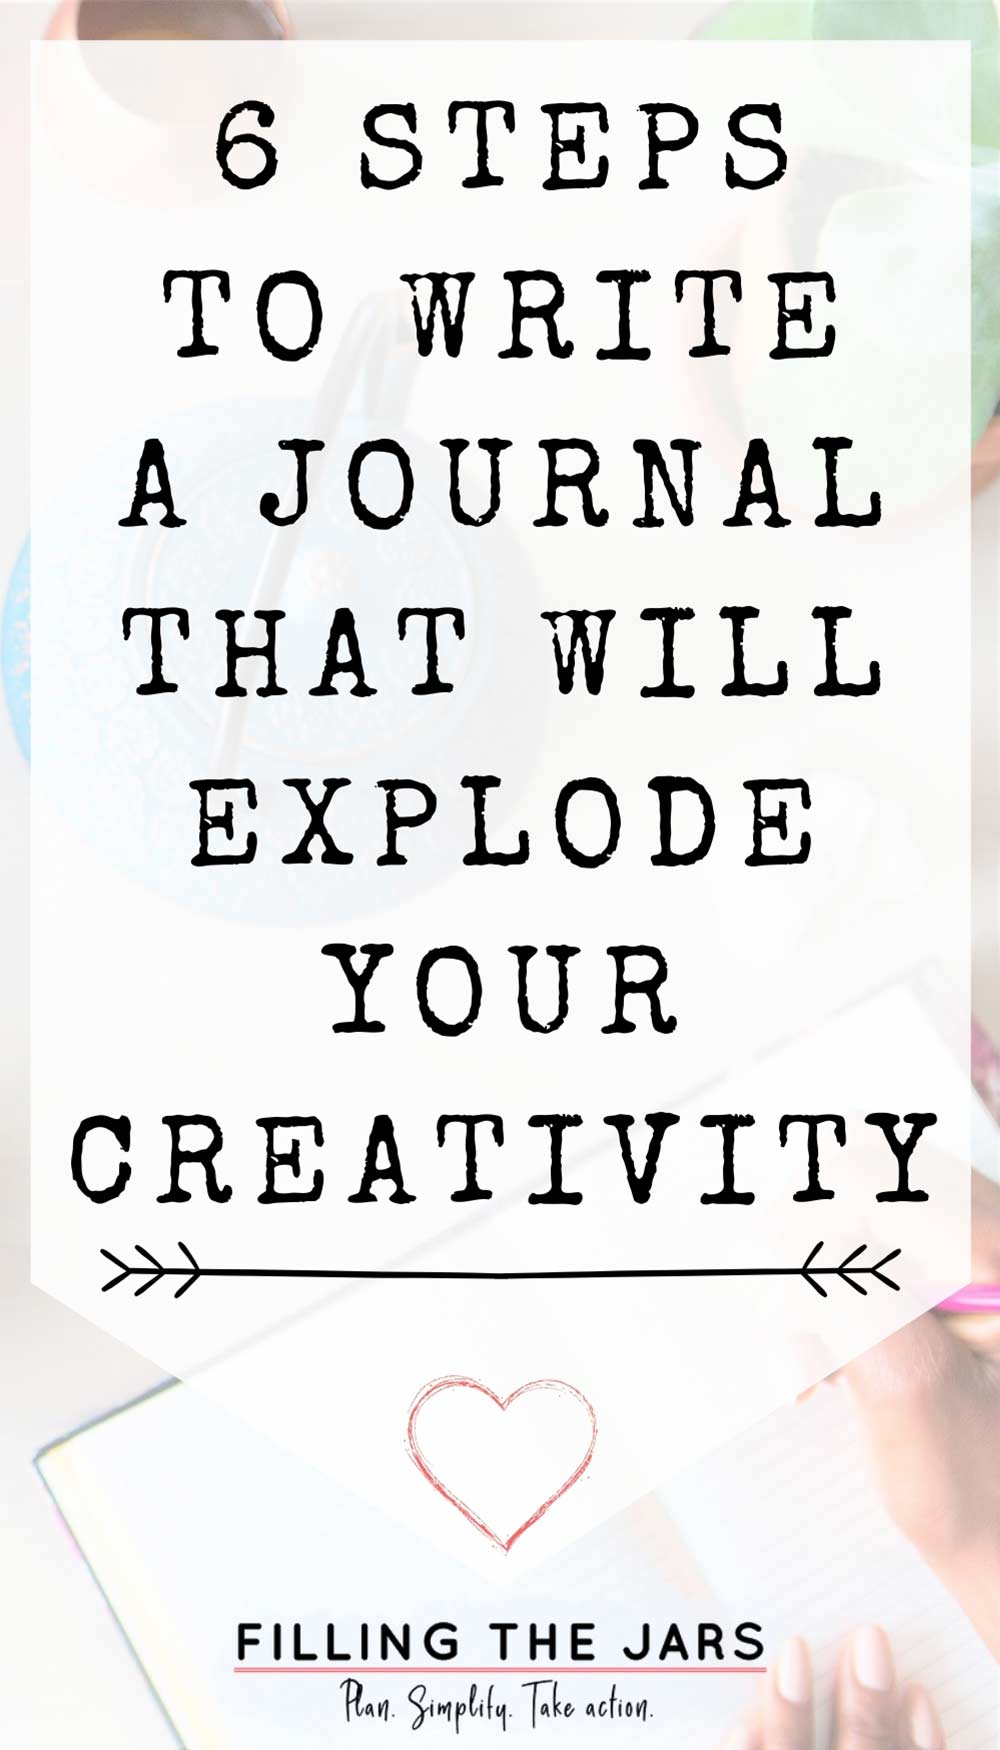 Text steps to write a creative journal on white background over image of woman doing creative journaling at white table next to teapot, teacup, and succulent plant.